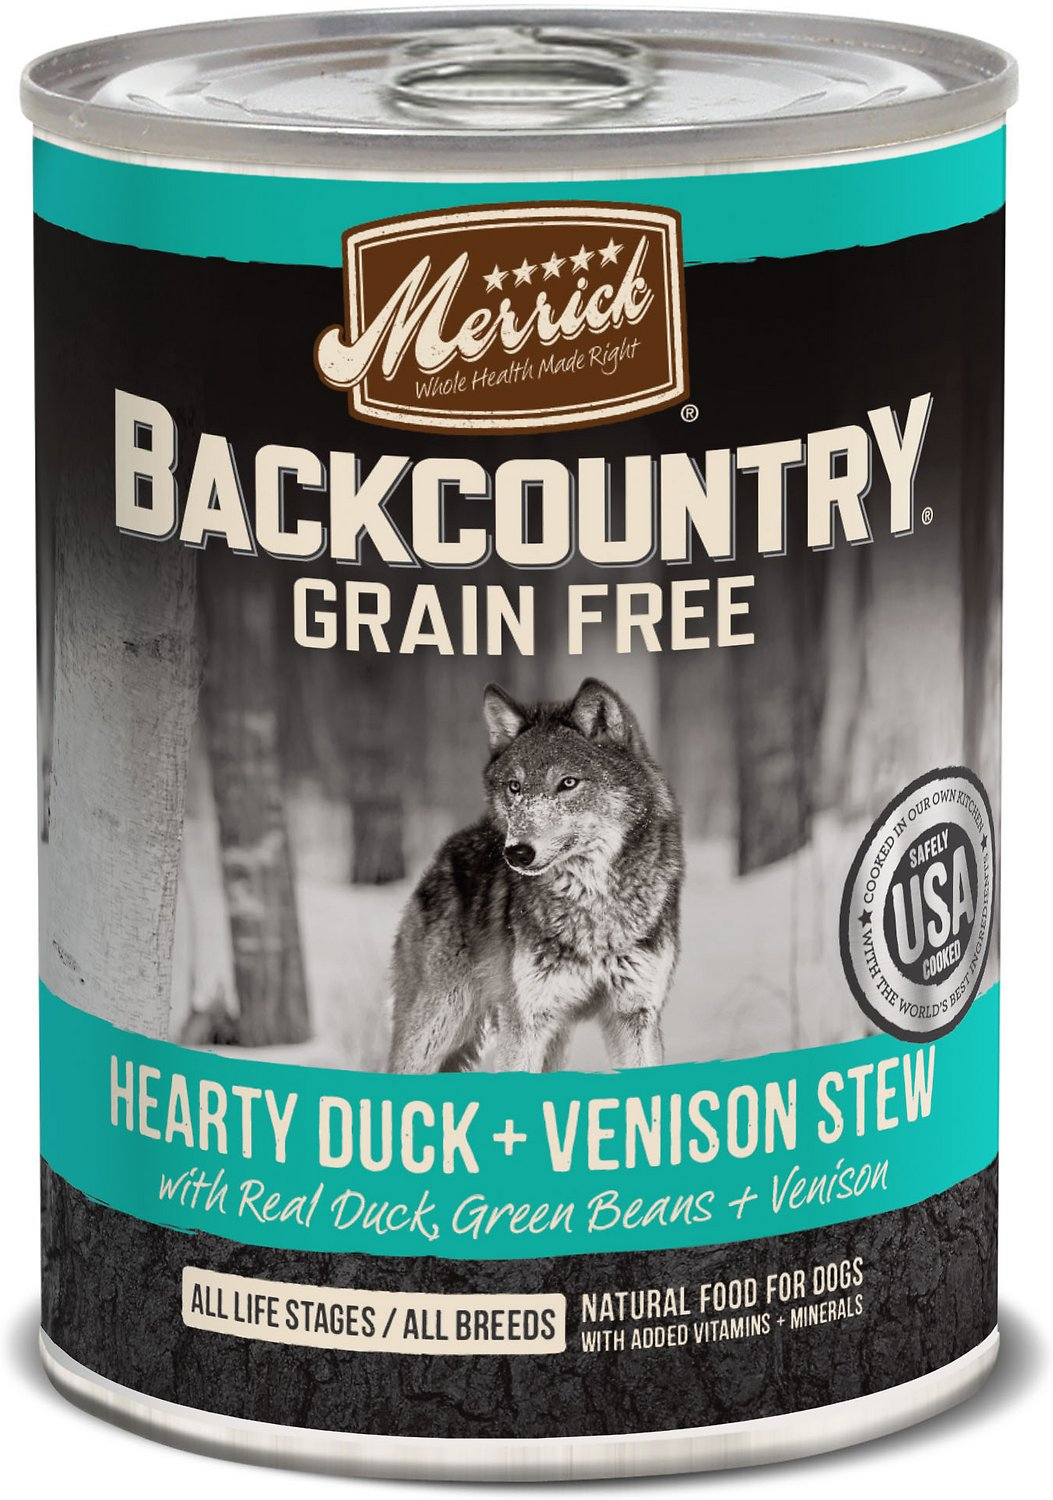 Merrick Backcountry Grain-Free Hearty Duck & Venison Stew Canned Dog Food, 12.7-oz